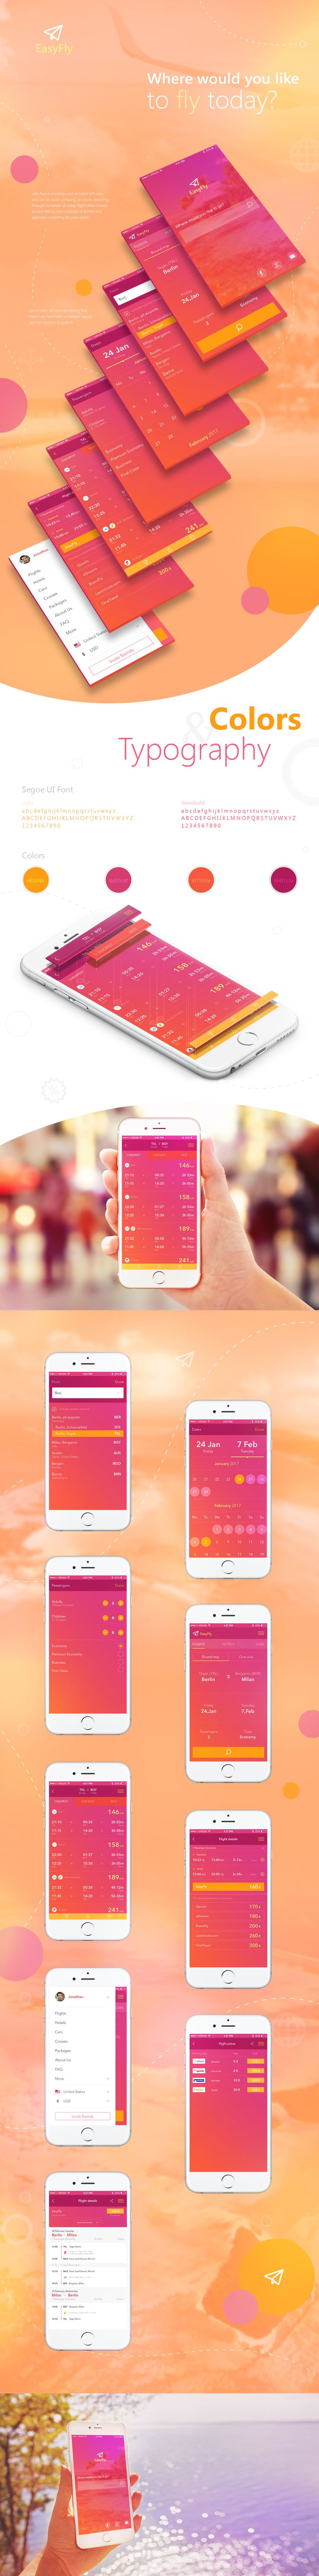 """Check out this @Behance project: """"EasyFly - Airfare search application design"""" https://www.behance.net/gallery/52774649/EasyFly-Airfare-search-application-design"""